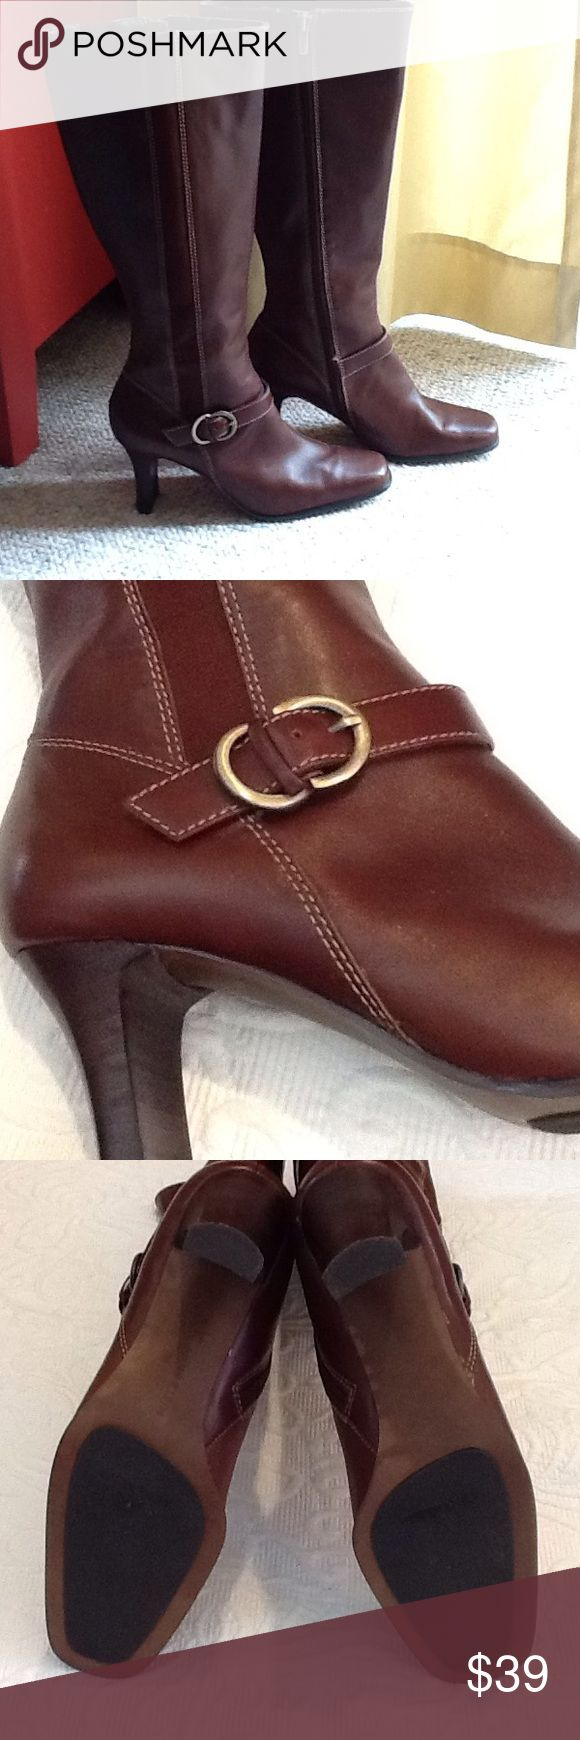 Gorgeous Anne Klein boots Leather upper, man made sole. Good used condition. Size 6M. Anne Klein Shoes Heeled Boots